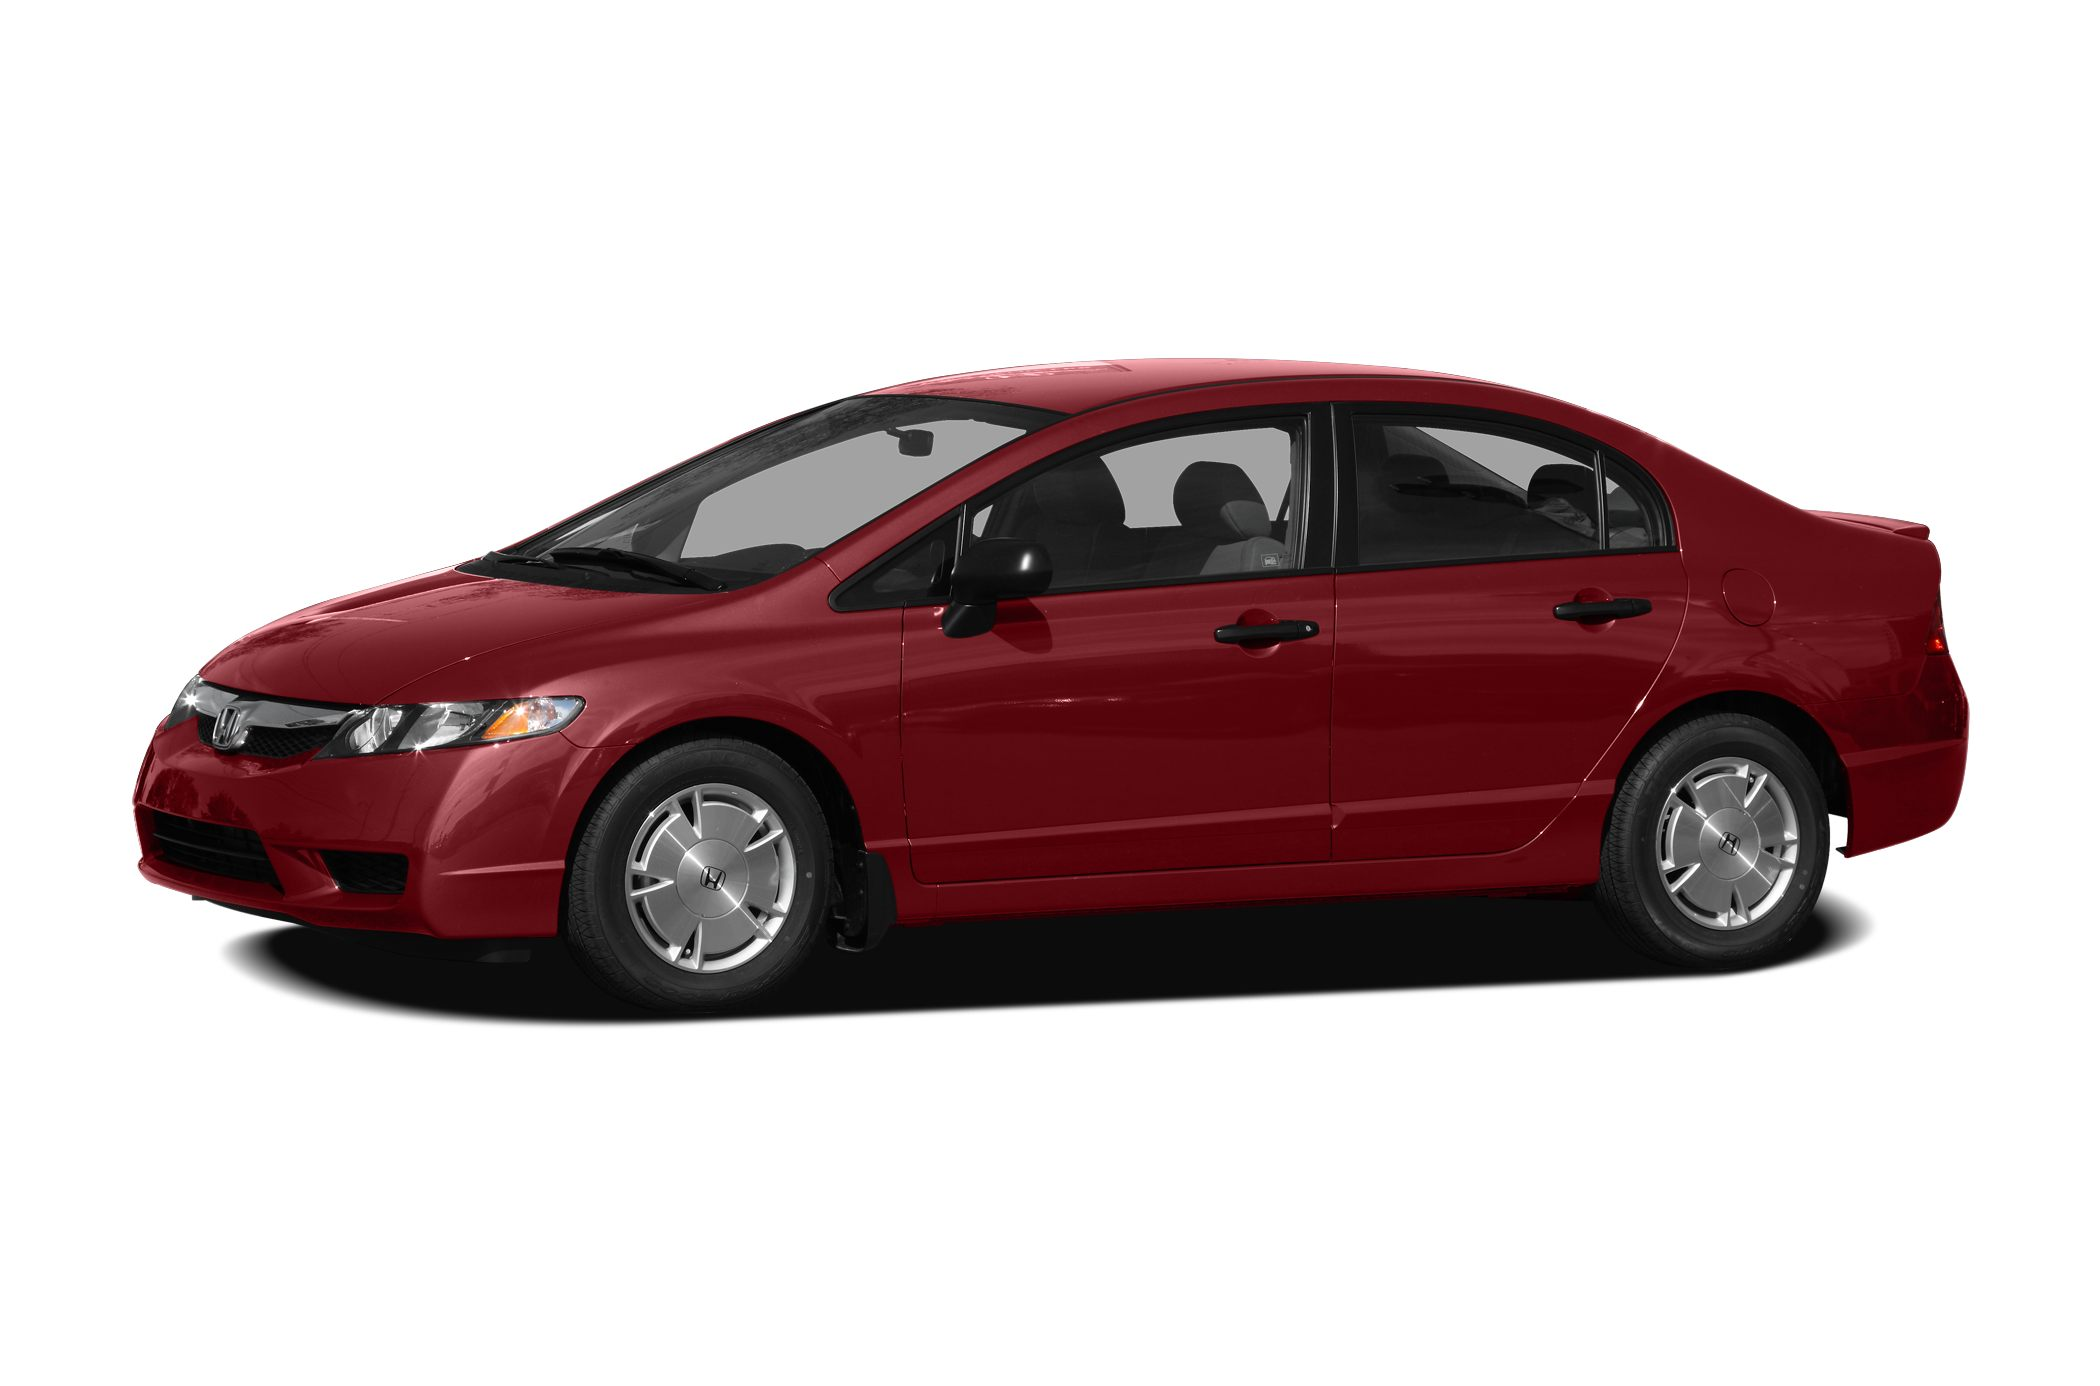 2009 Honda Civic LX Sedan for sale in Chicago for $10,991 with 42,331 miles.